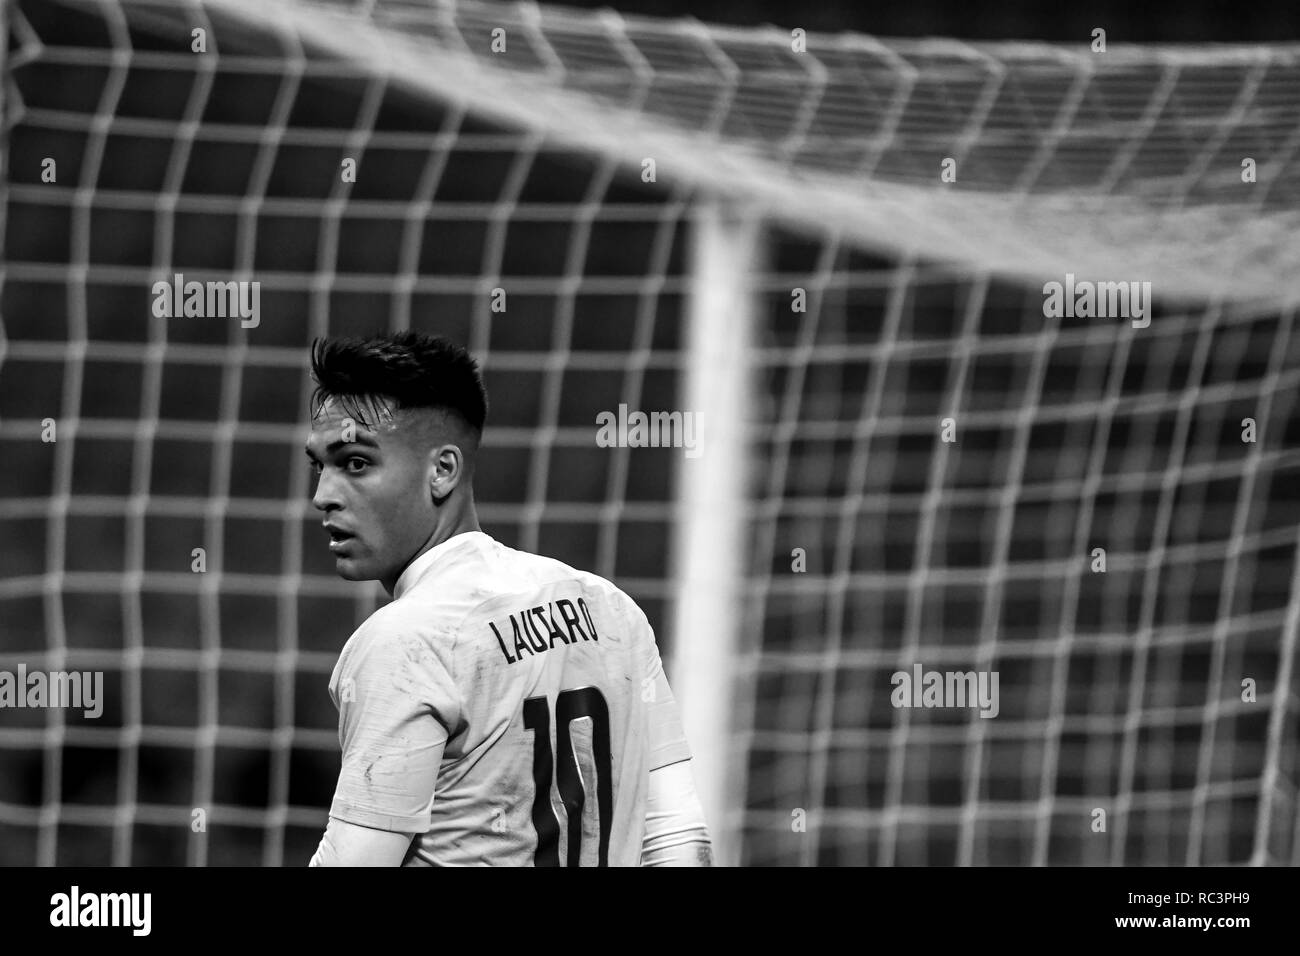 Black and White image of Forward Lautaro Martínez (Inter) looking on during the Italian Cup 'Coppa Italia' football match, Inter Milan vs Benevento Calcio at San Siro Meazza Stadium in Milan, Italy on 13 January 2019. The football match is played behind closed doors after Napoli's Senegalese player Kalidou Koulibaly was subject to racist chants by FC Internazionale's 'ultra' fans during the Boxing Day match. Credit: Piero Cruciatti/Alamy Live News Stock Photo